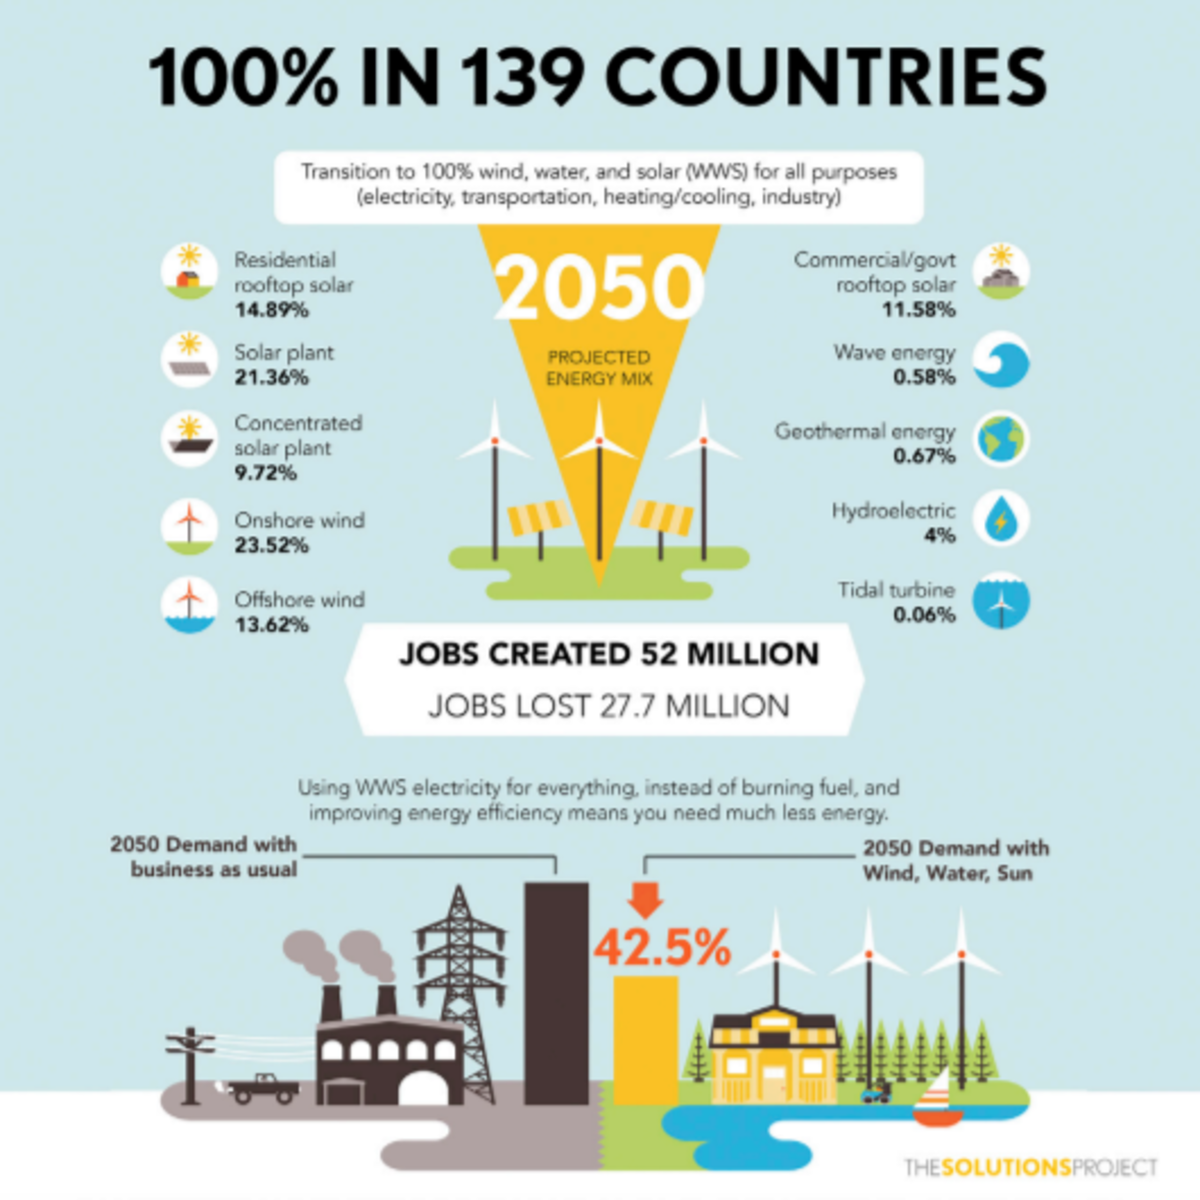 Researchers lay out a plan for nearly 140 countries that could be powered 100 percent by renewable energy by 2050.